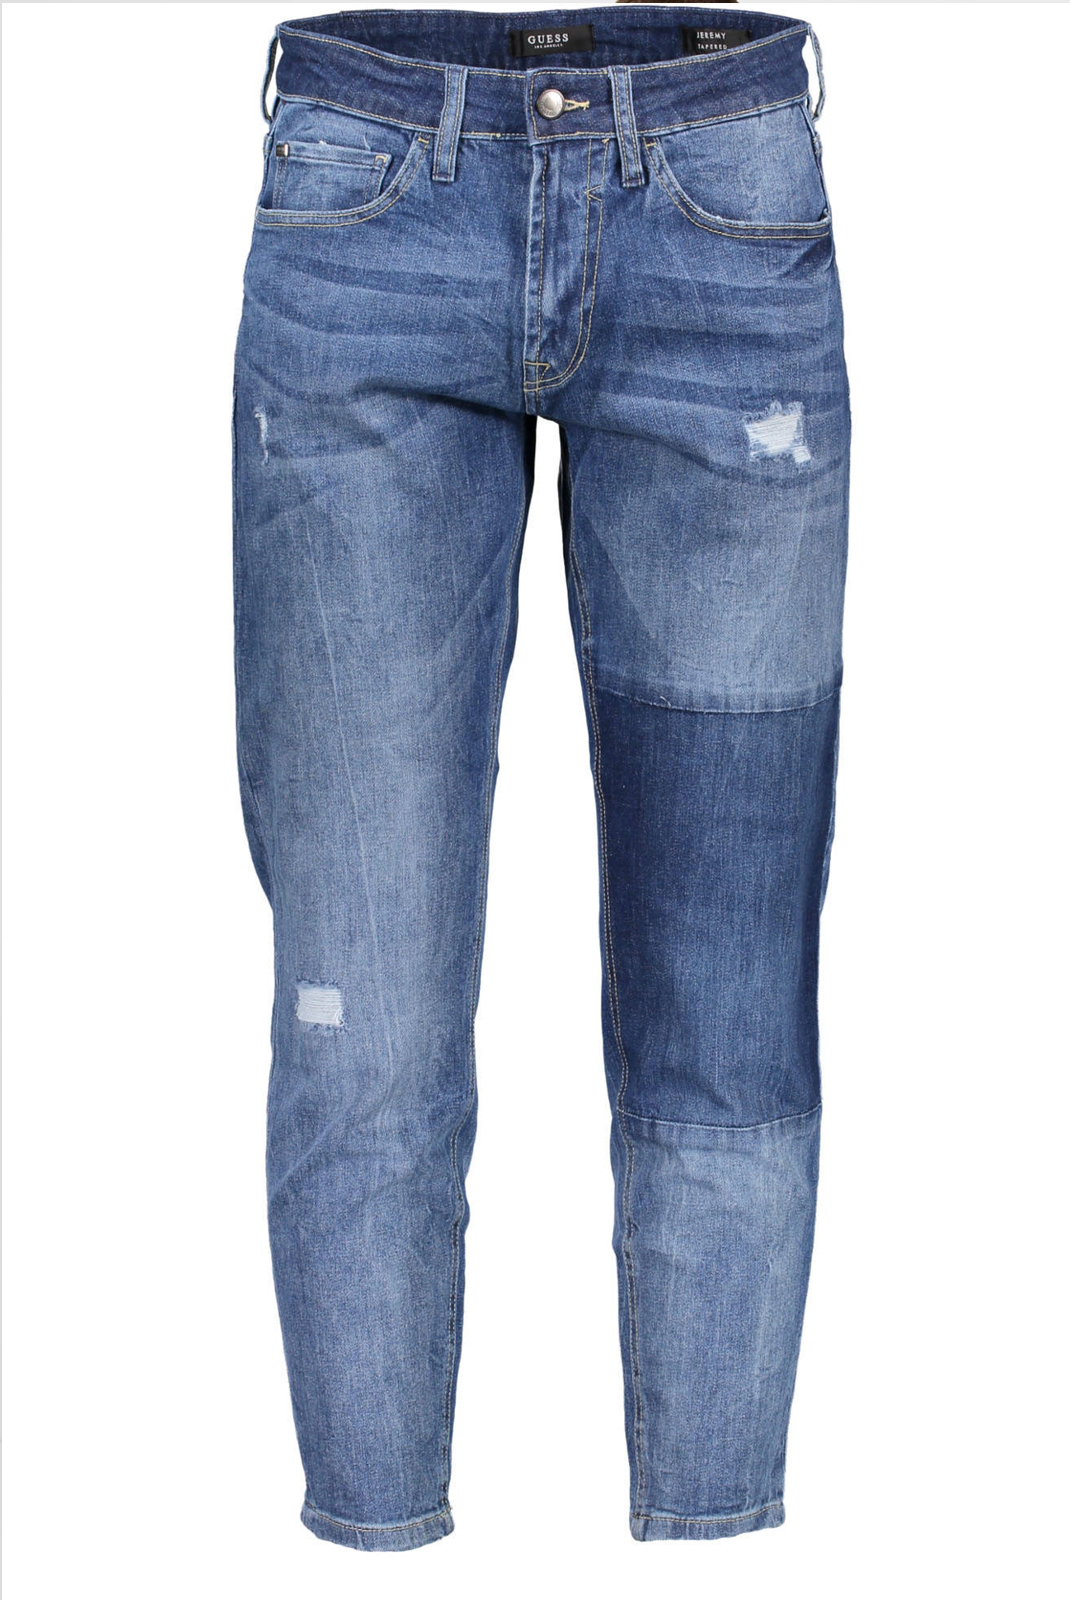 tapered  Guess jeans M81A24D2YO0 jeremy OUTSIDER